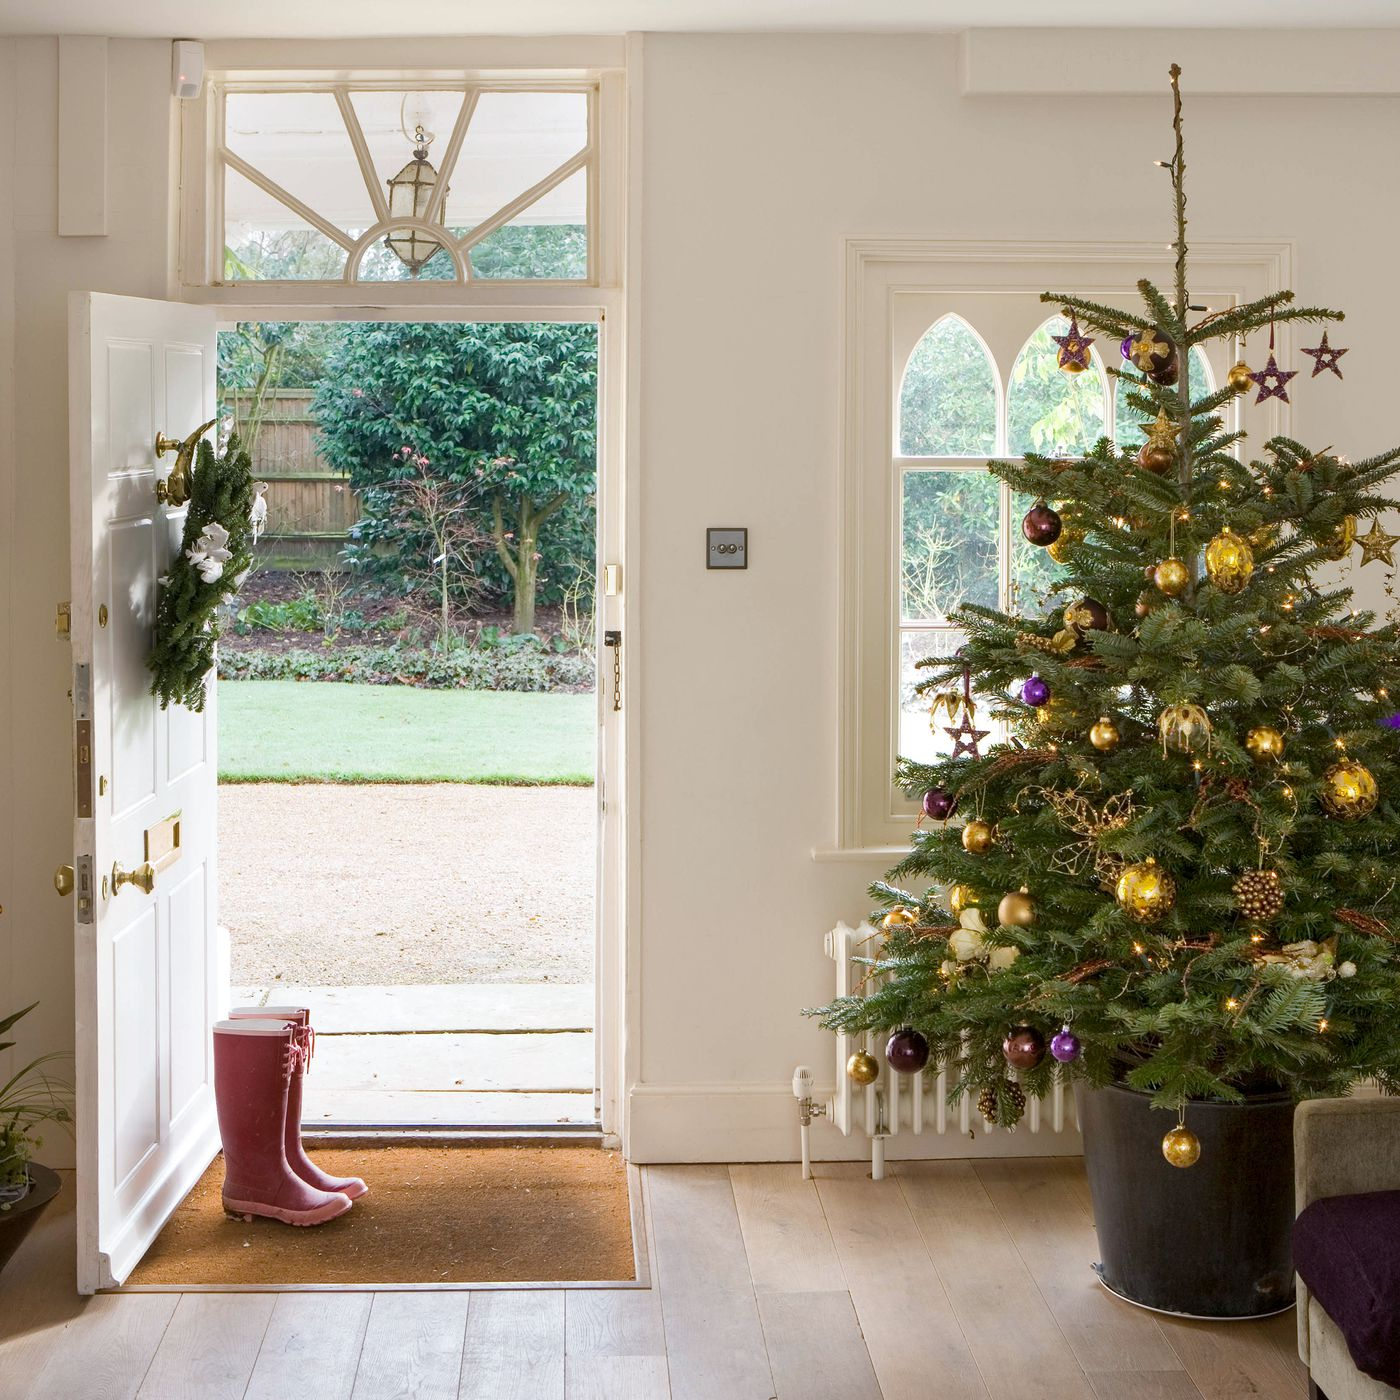 10 Uses For An Old Christmas Tree This Old House